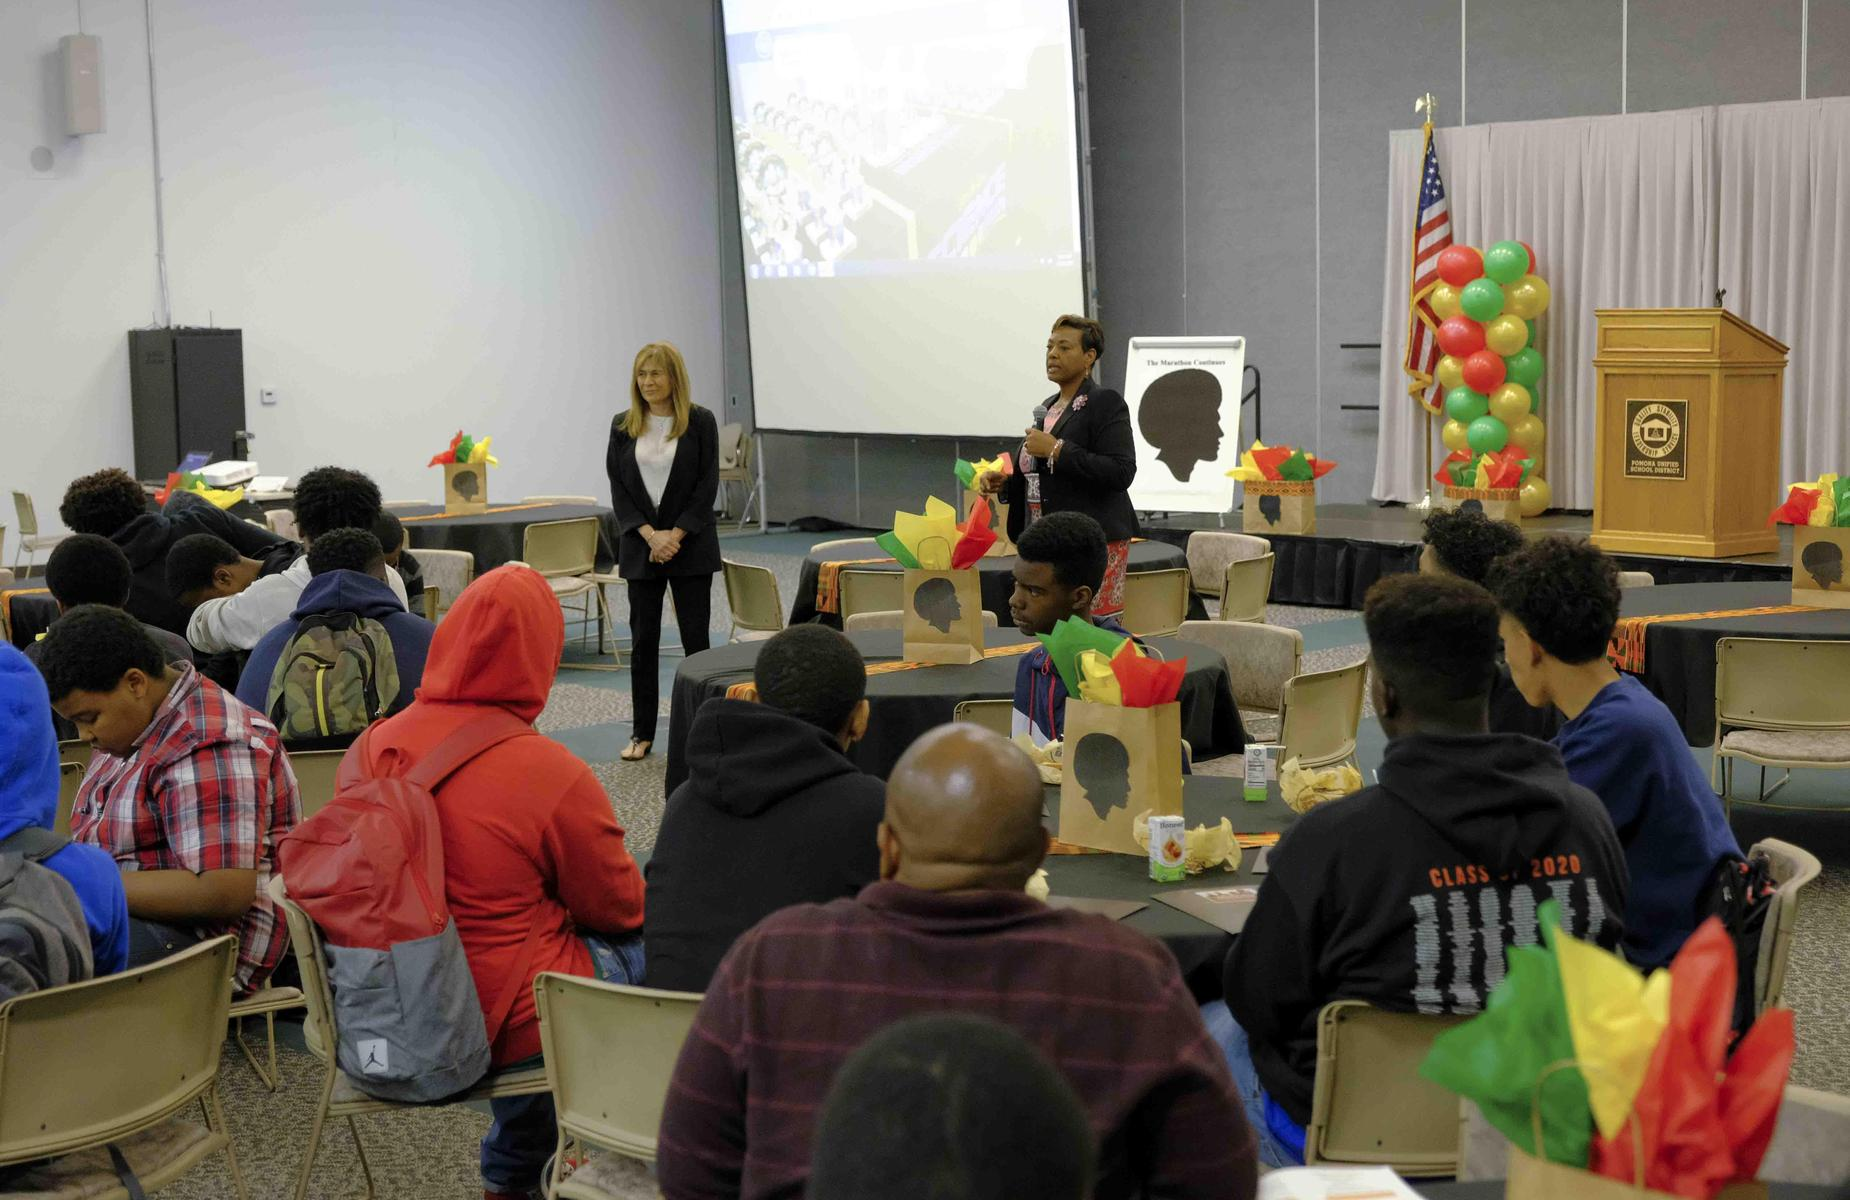 """School Board President Adrienne Konigar-Macklin, and School Board Member Dr. Robeta Perlman had our youth engaged at The PUSD/PABSE #AfricanAmericanMale summit. This year's theme """"The Marathon Continues"""" #proud2bepusd"""